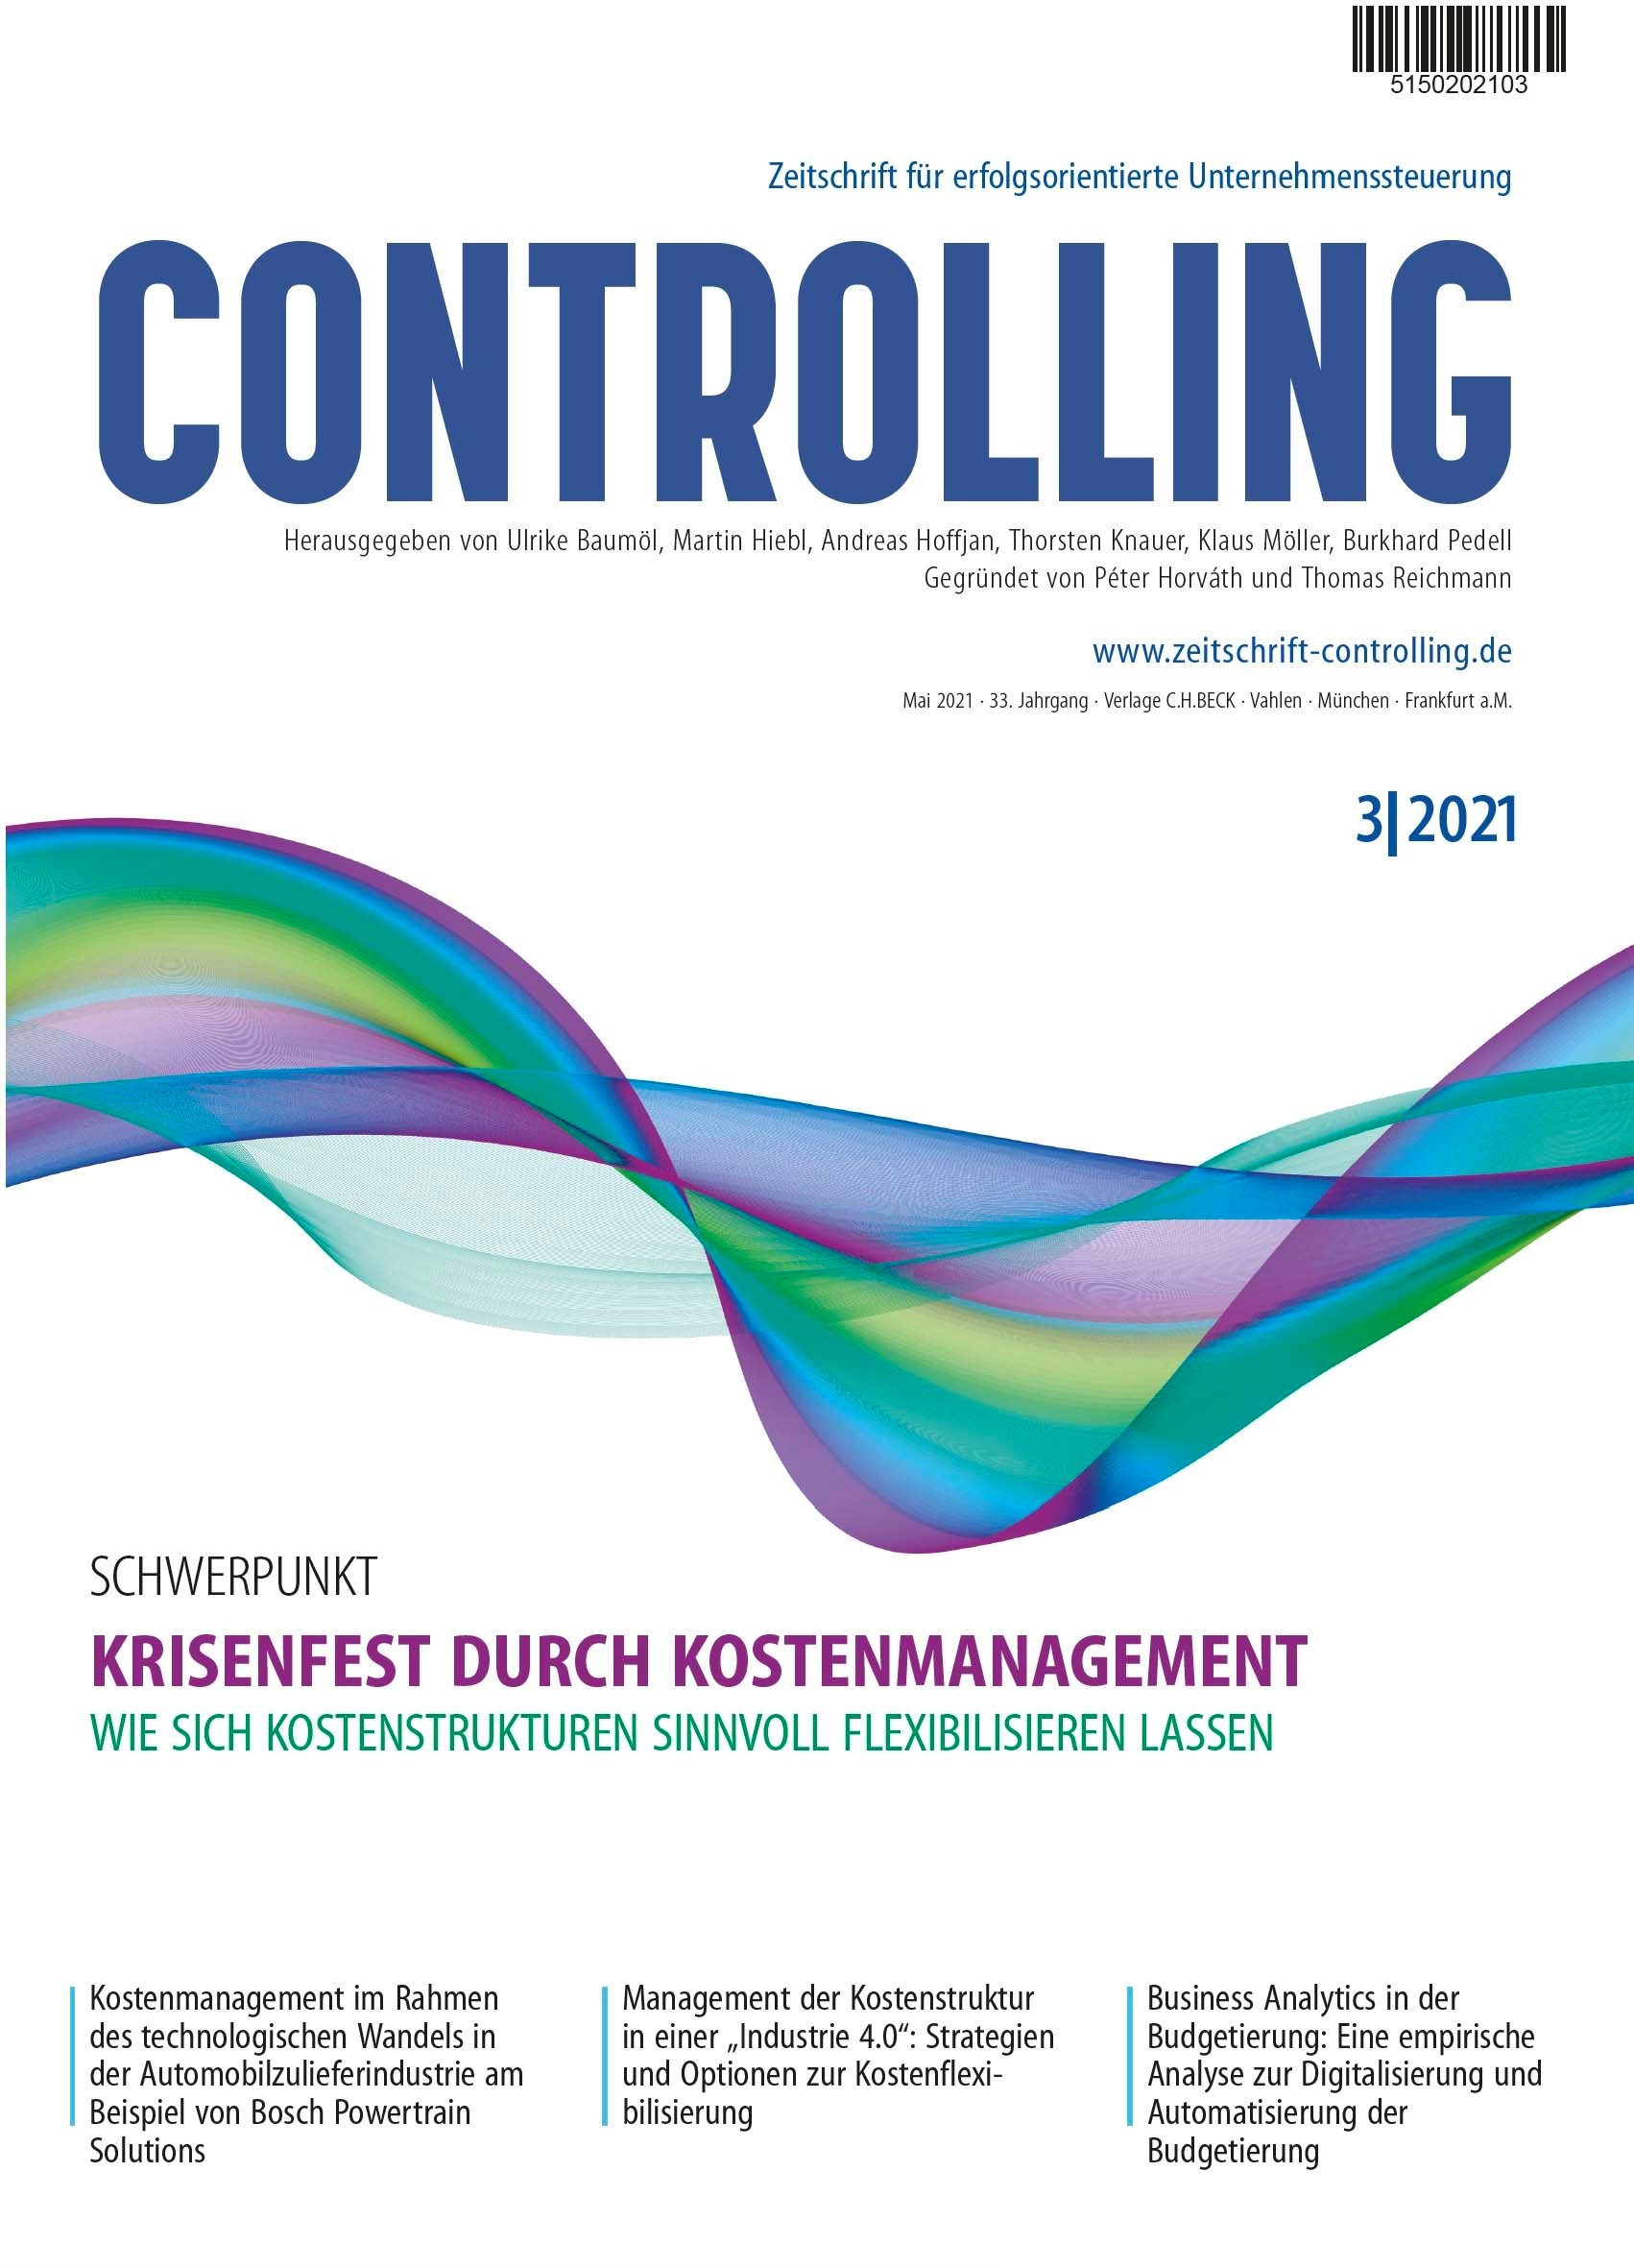 Controlling (Cover)